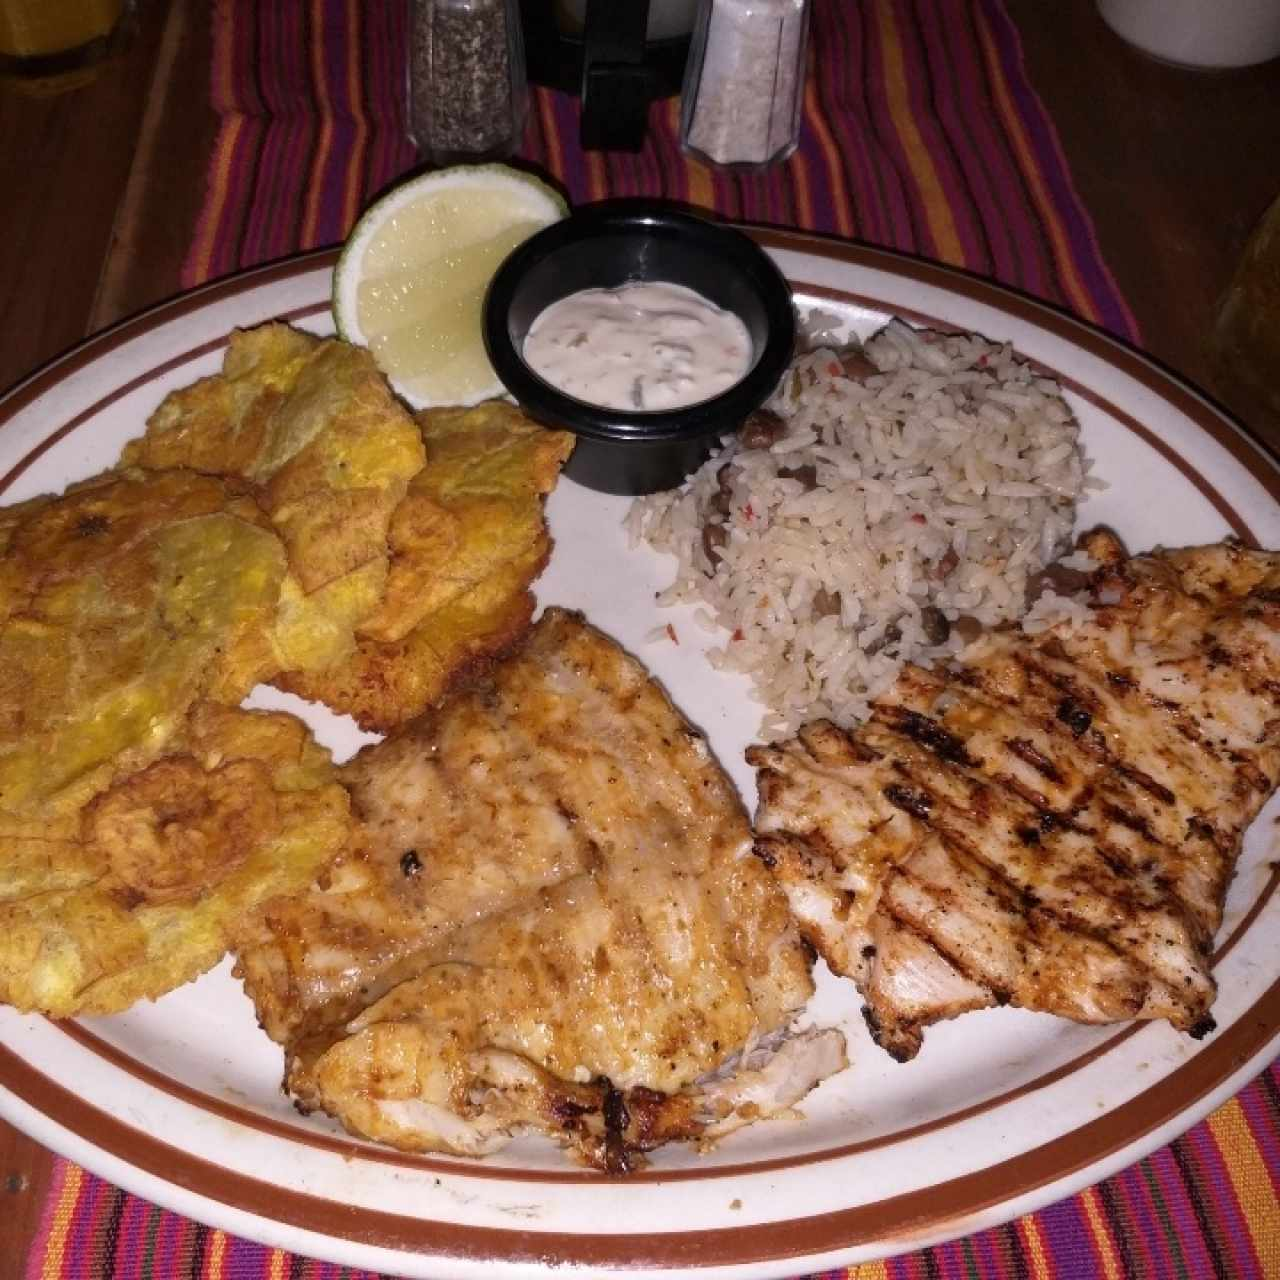 Platos Mixtos - Corvina y Pollo